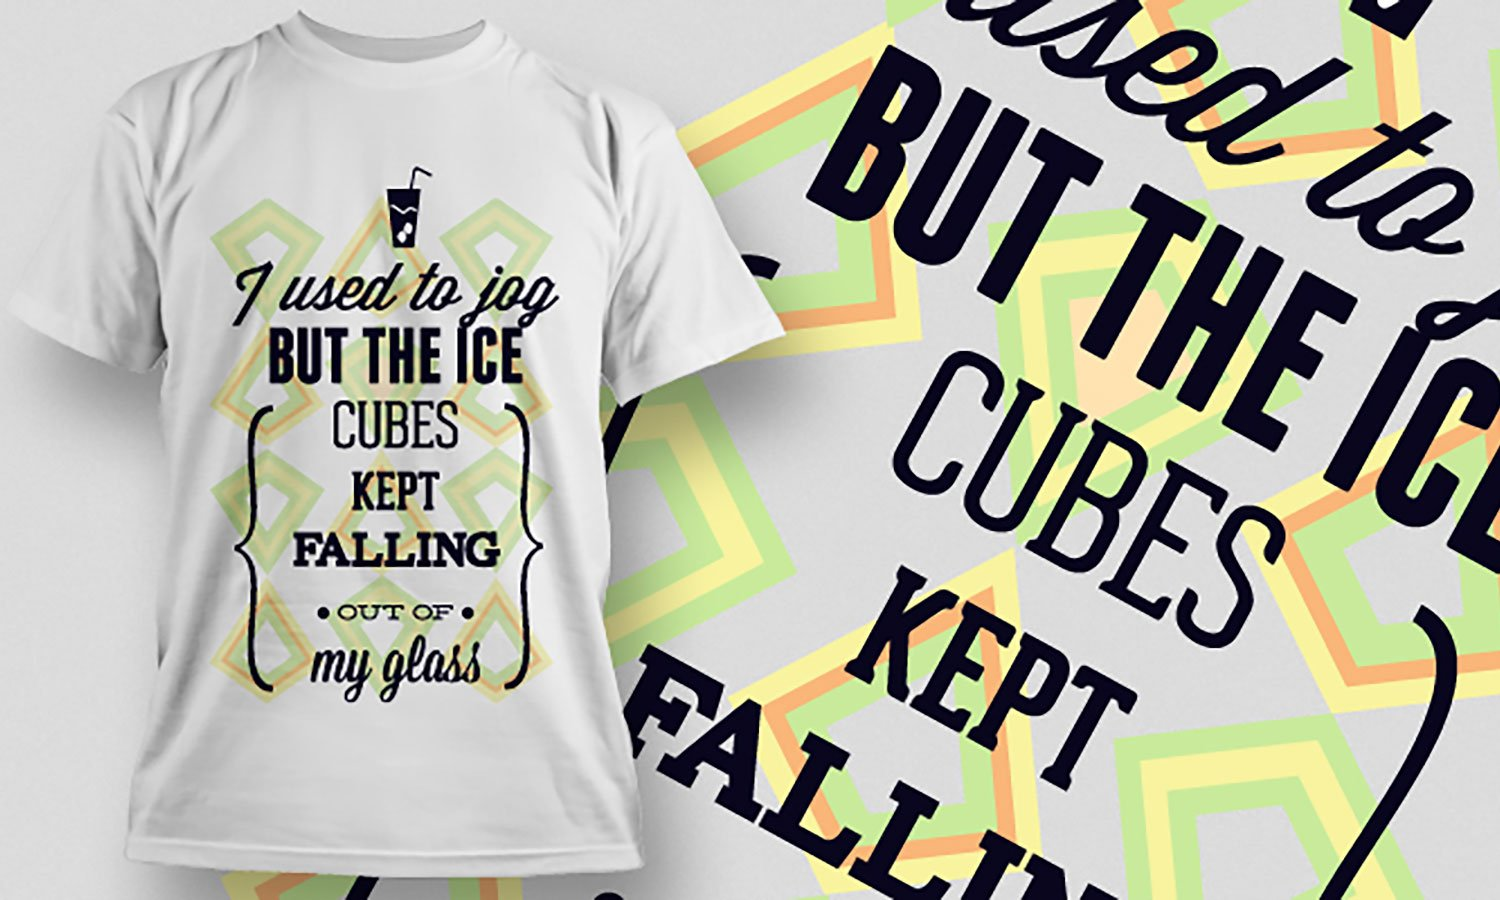 Ice Cubes - Printed T-Shirt for Men, Women and Kids - TS373